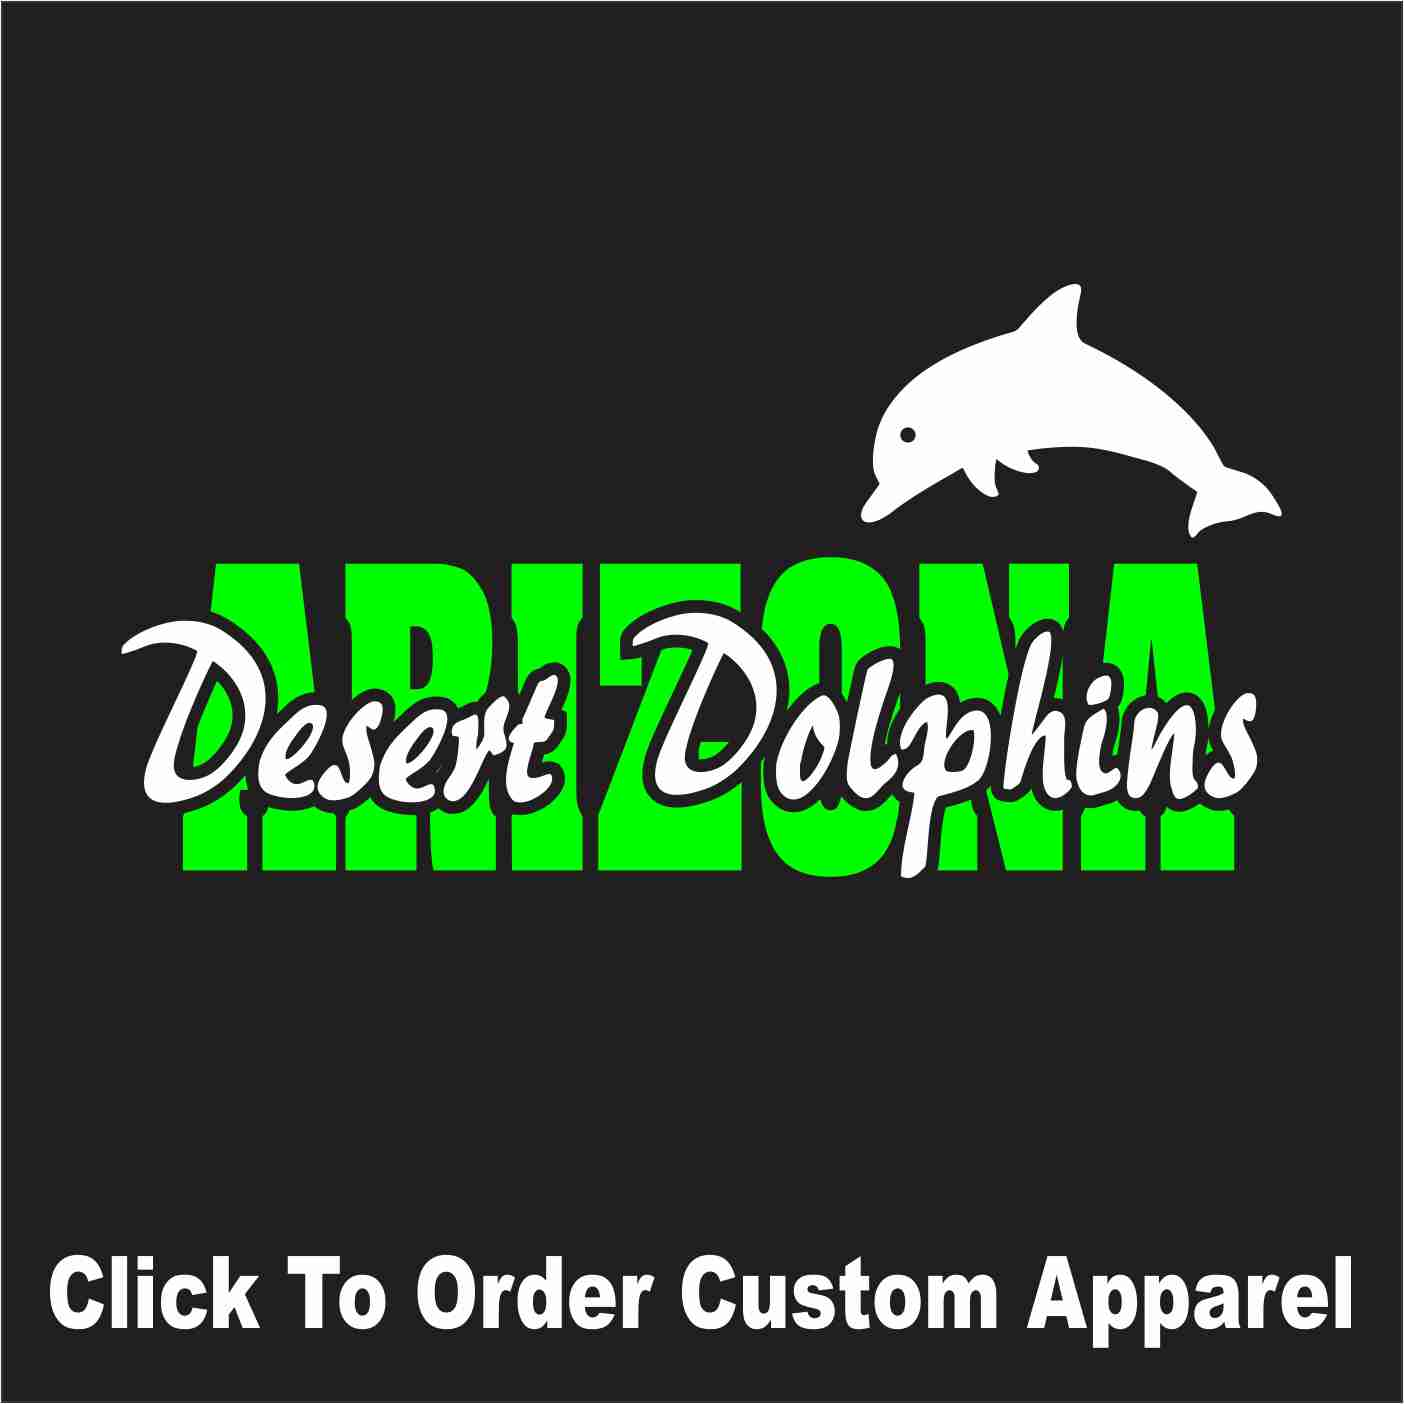 desert-dolphins-button-neon-labelled.jpg